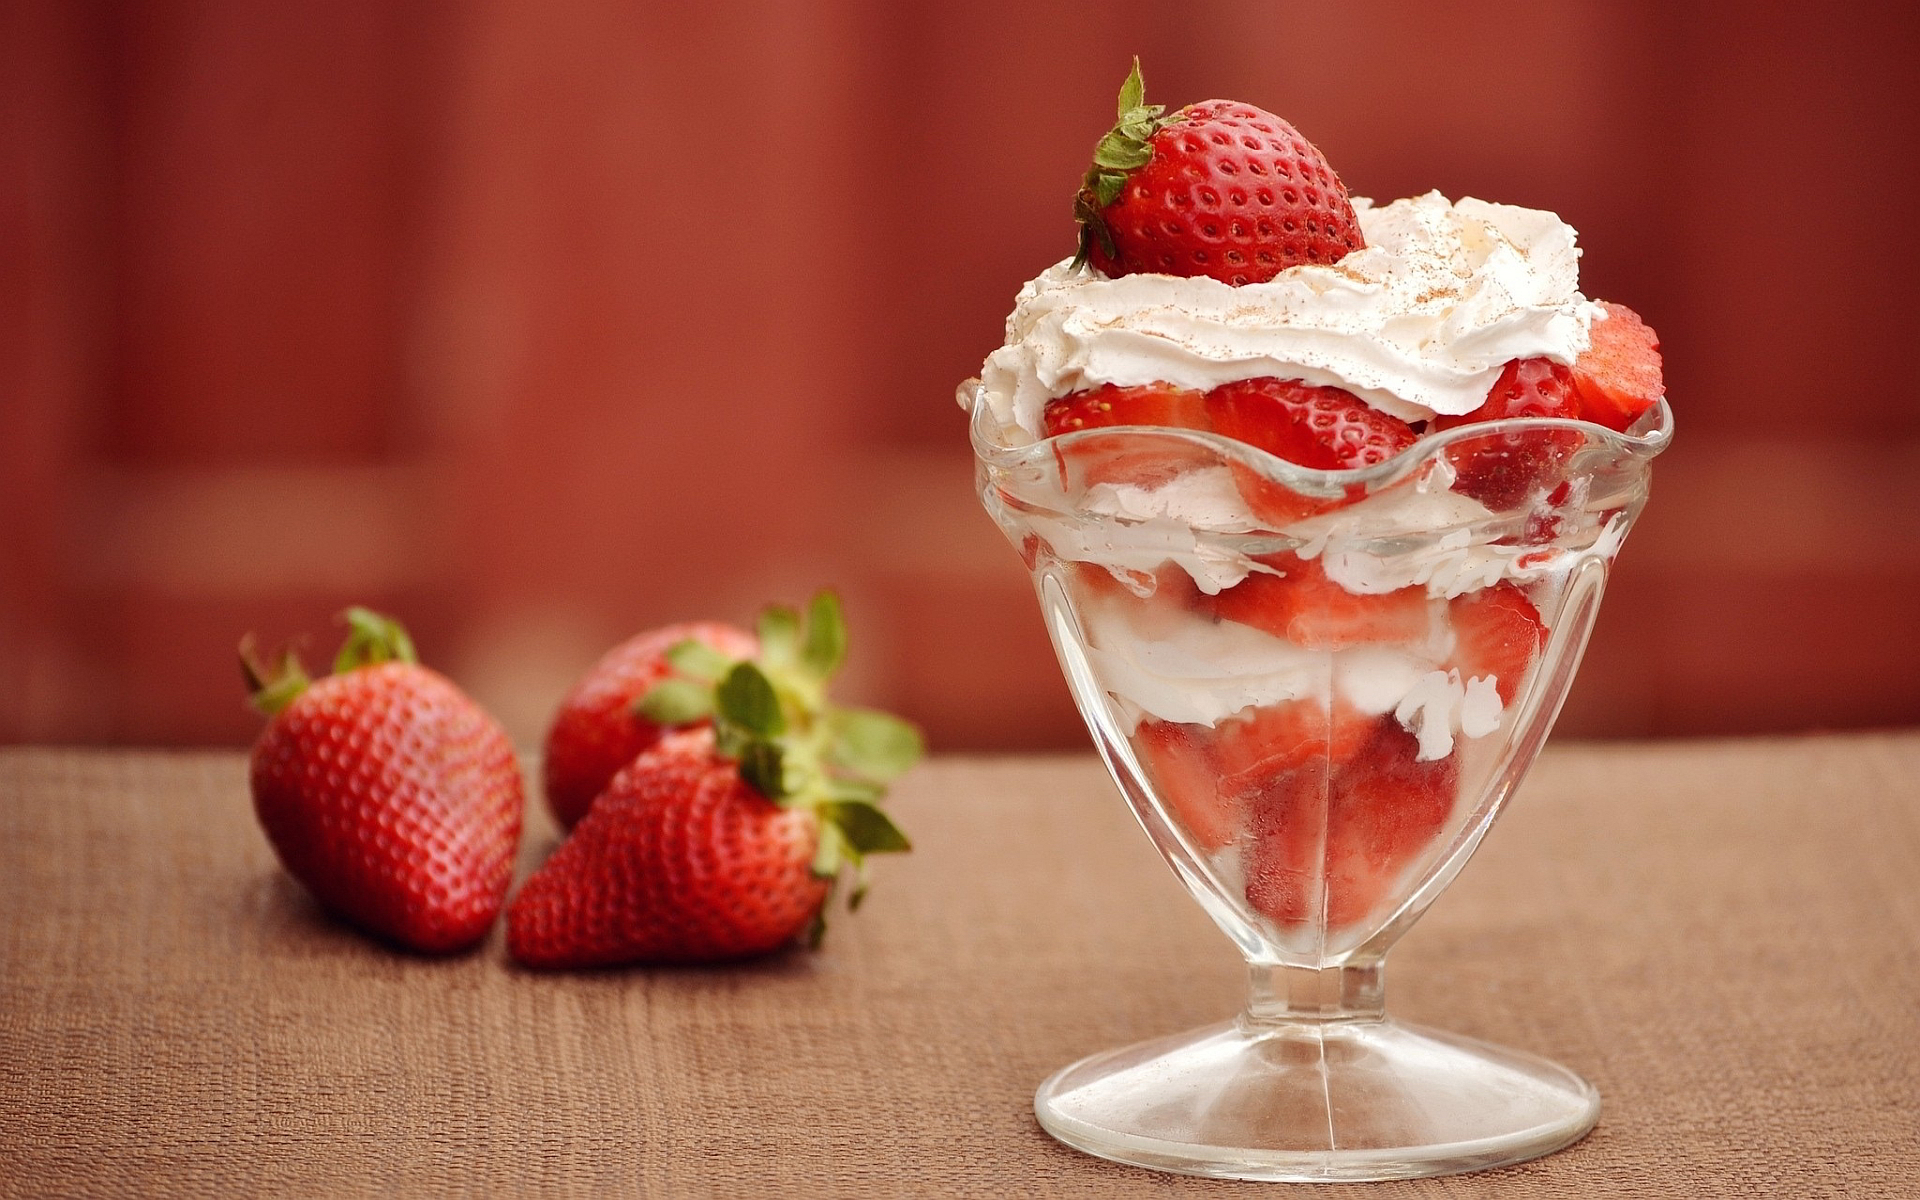 Cream strawberry dessert